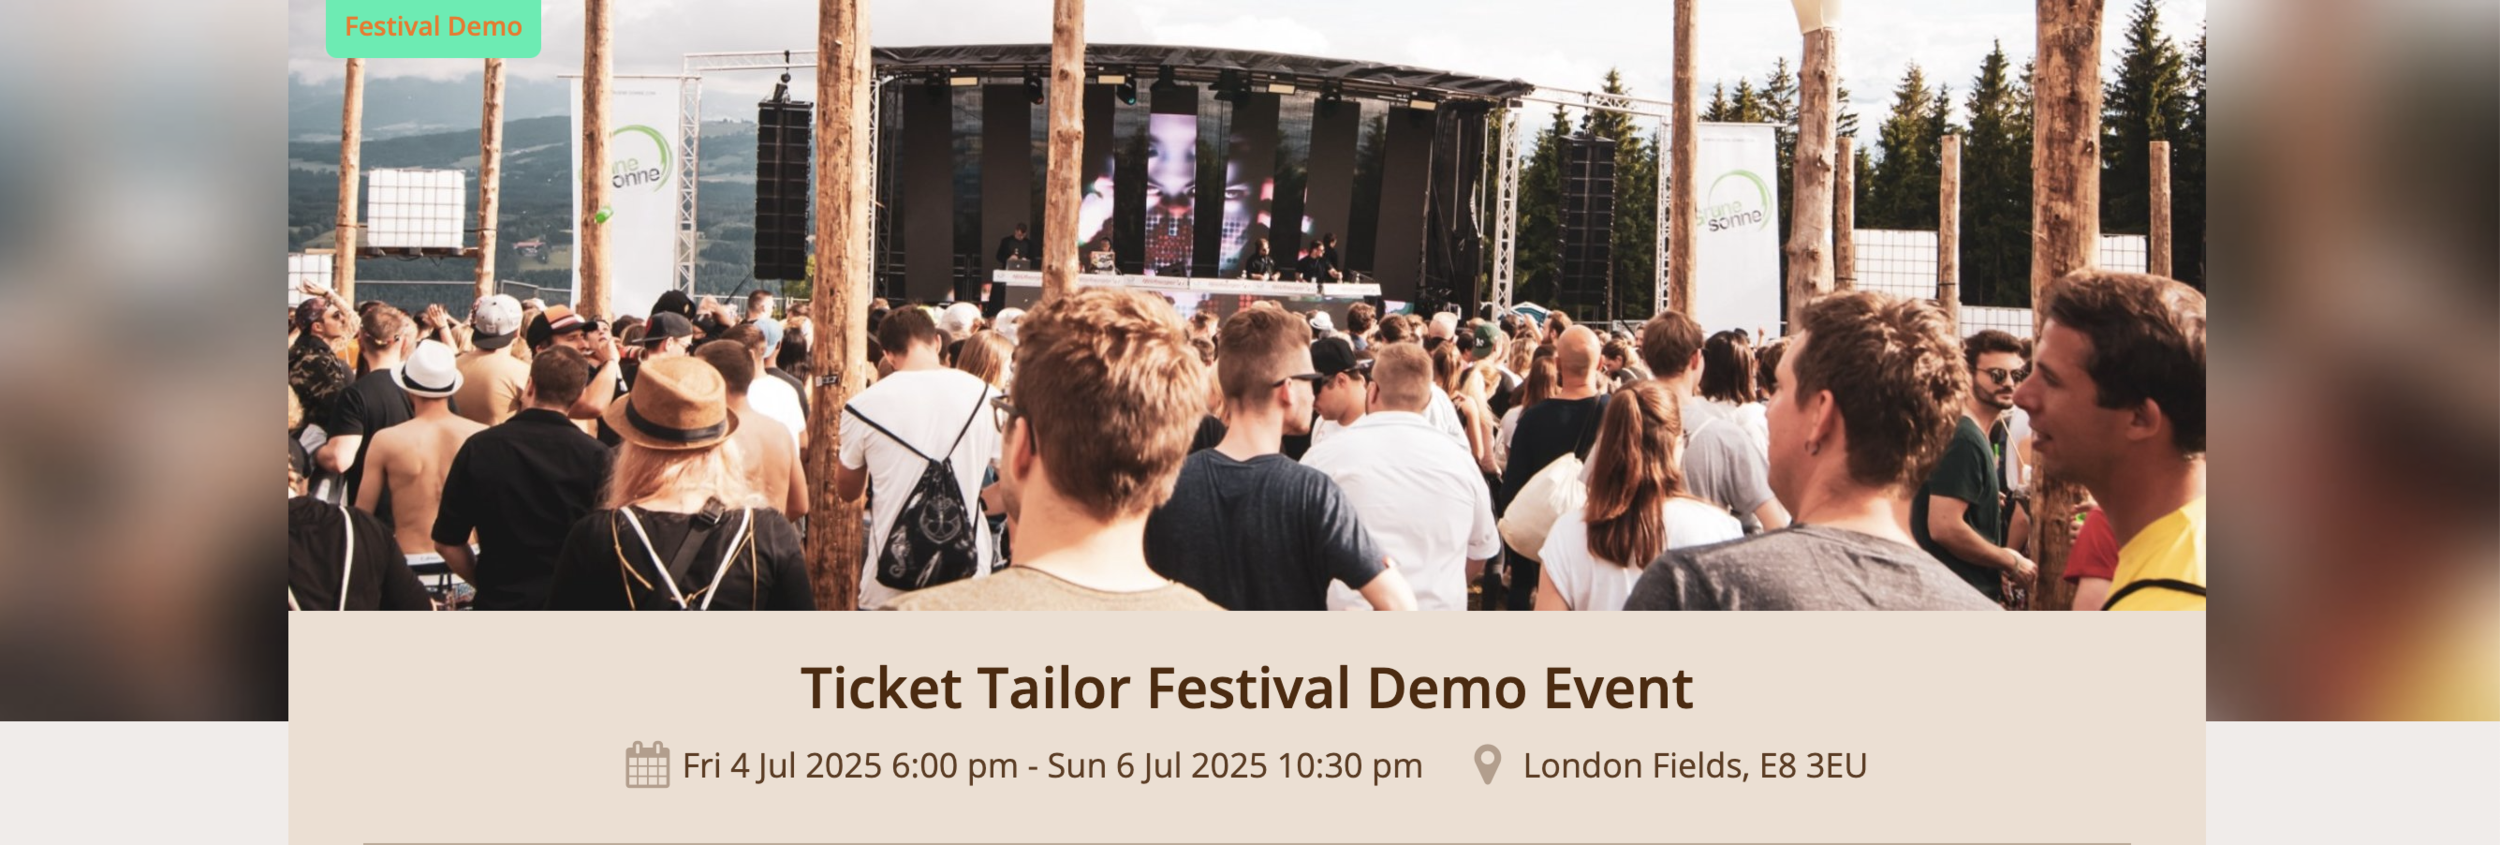 Sell tickets for a music festival